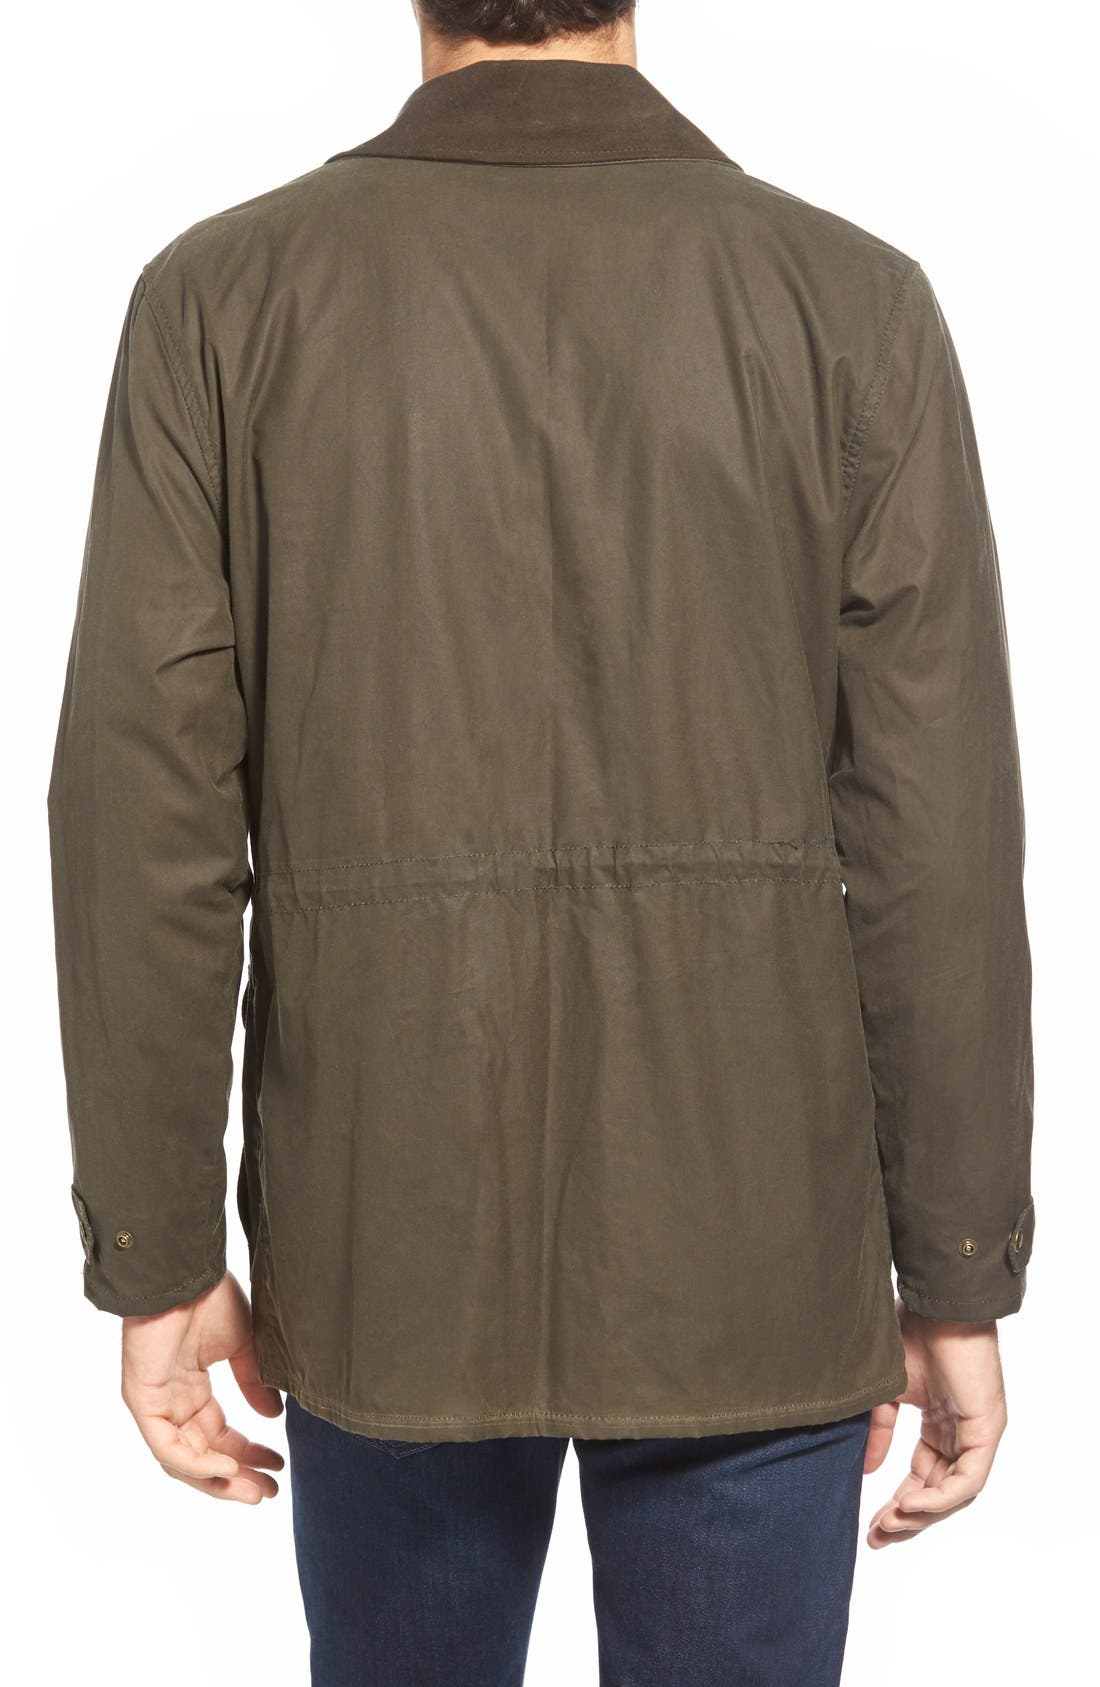 'Cover Cloth Mile Marker' Waxed Cotton Coat,                             Alternate thumbnail 6, color,                             Otter Green